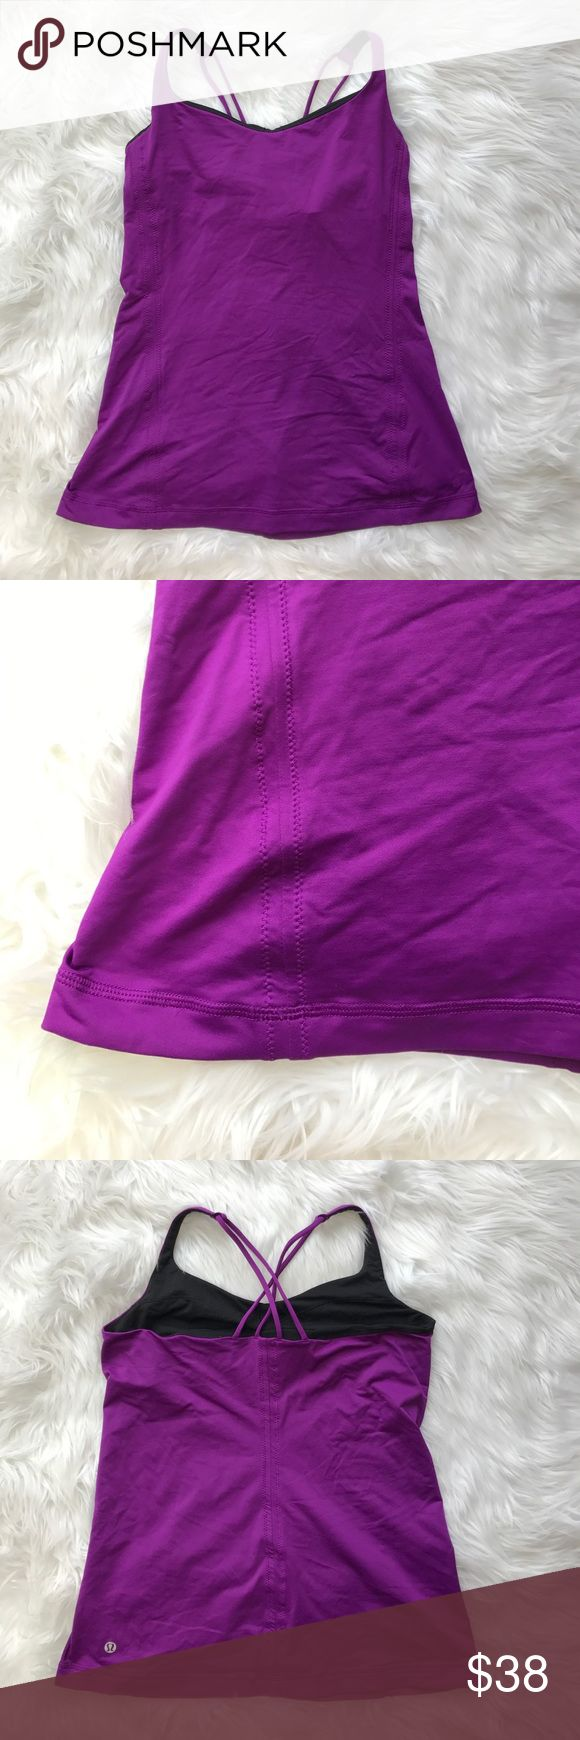 • Lululemon • Purple Strappy Tank Top Yoga 10 - Lululemon - Purple  - Yoga Tank Top - No Pads - Can put your own in - Size 10 - Excellent Condition lululemon athletica Tops Tank Tops